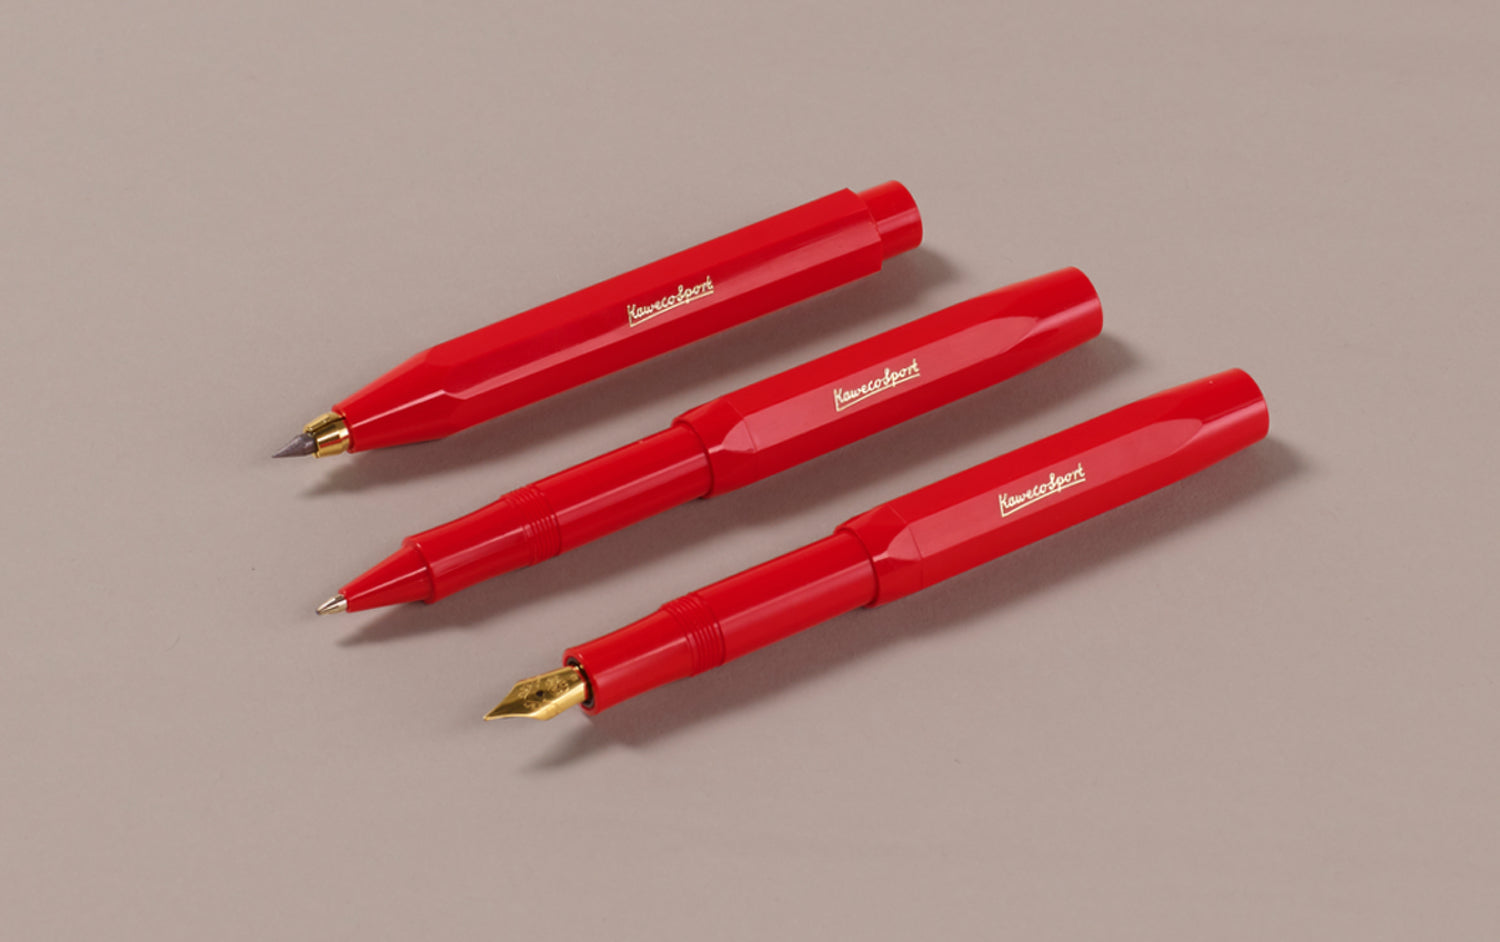 Bright Red Kaweco Classic Sport Rollerball Pen